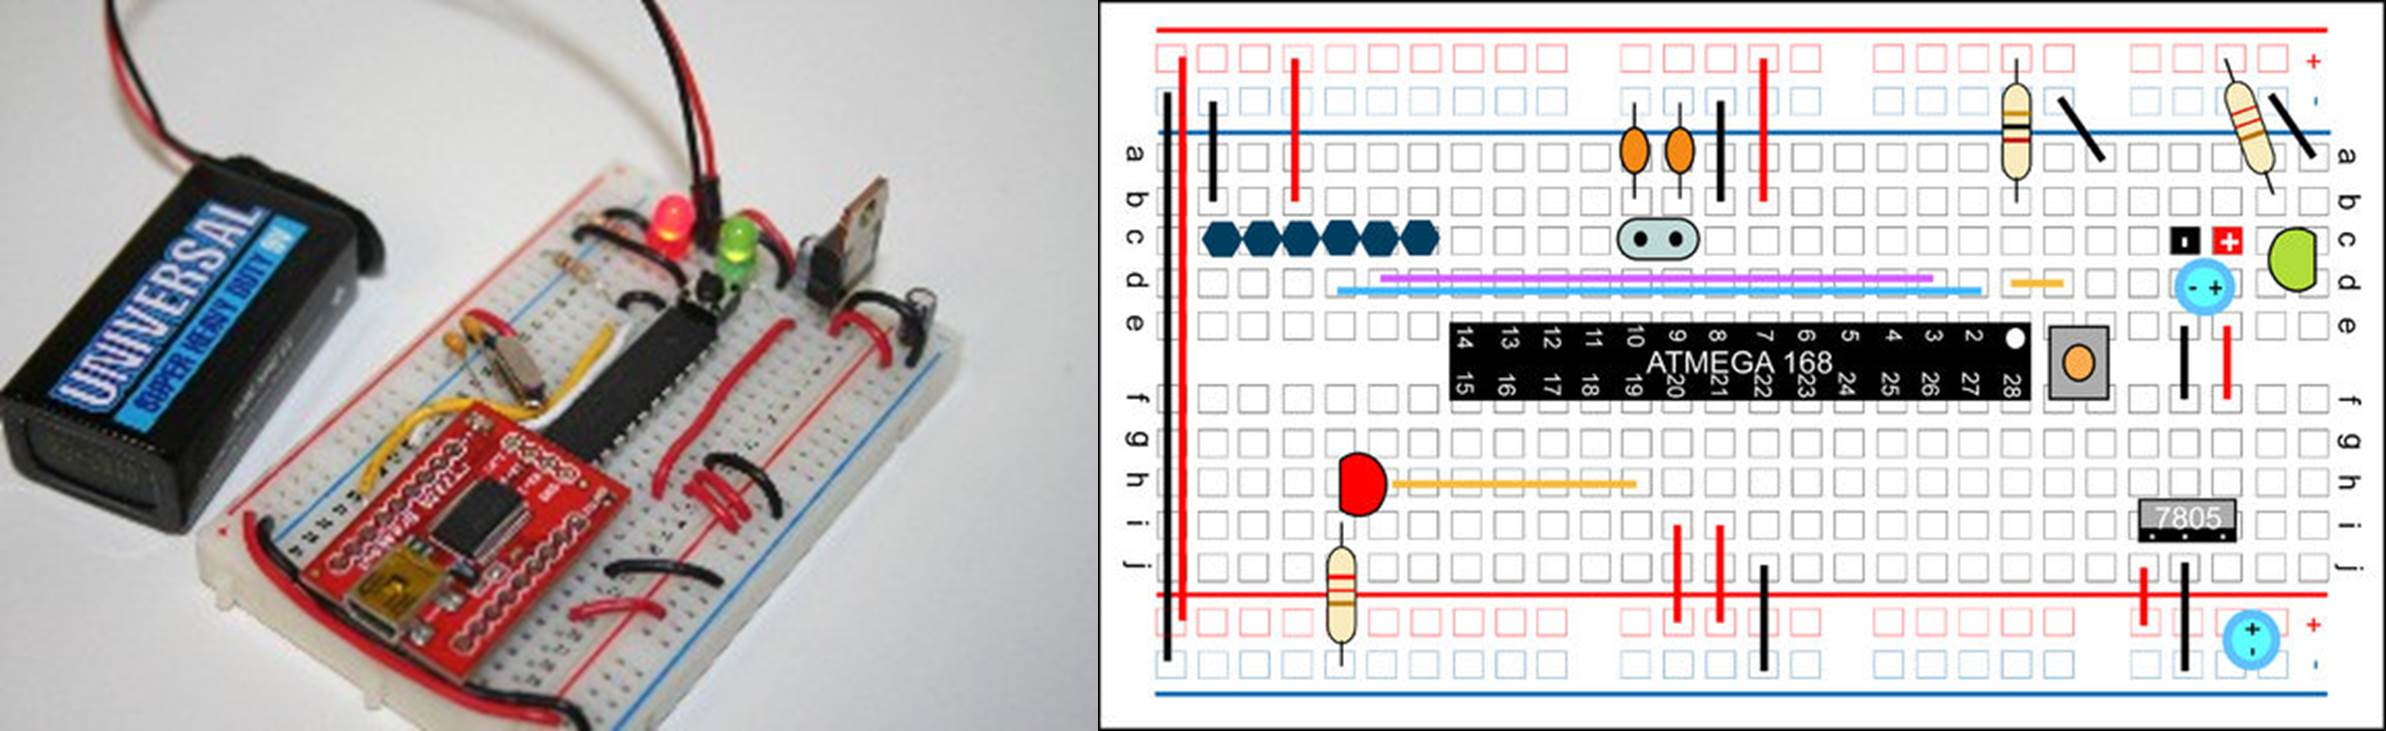 Build Your Own Arduino On A Breadboard The Diy Life 3 Way Switch Make